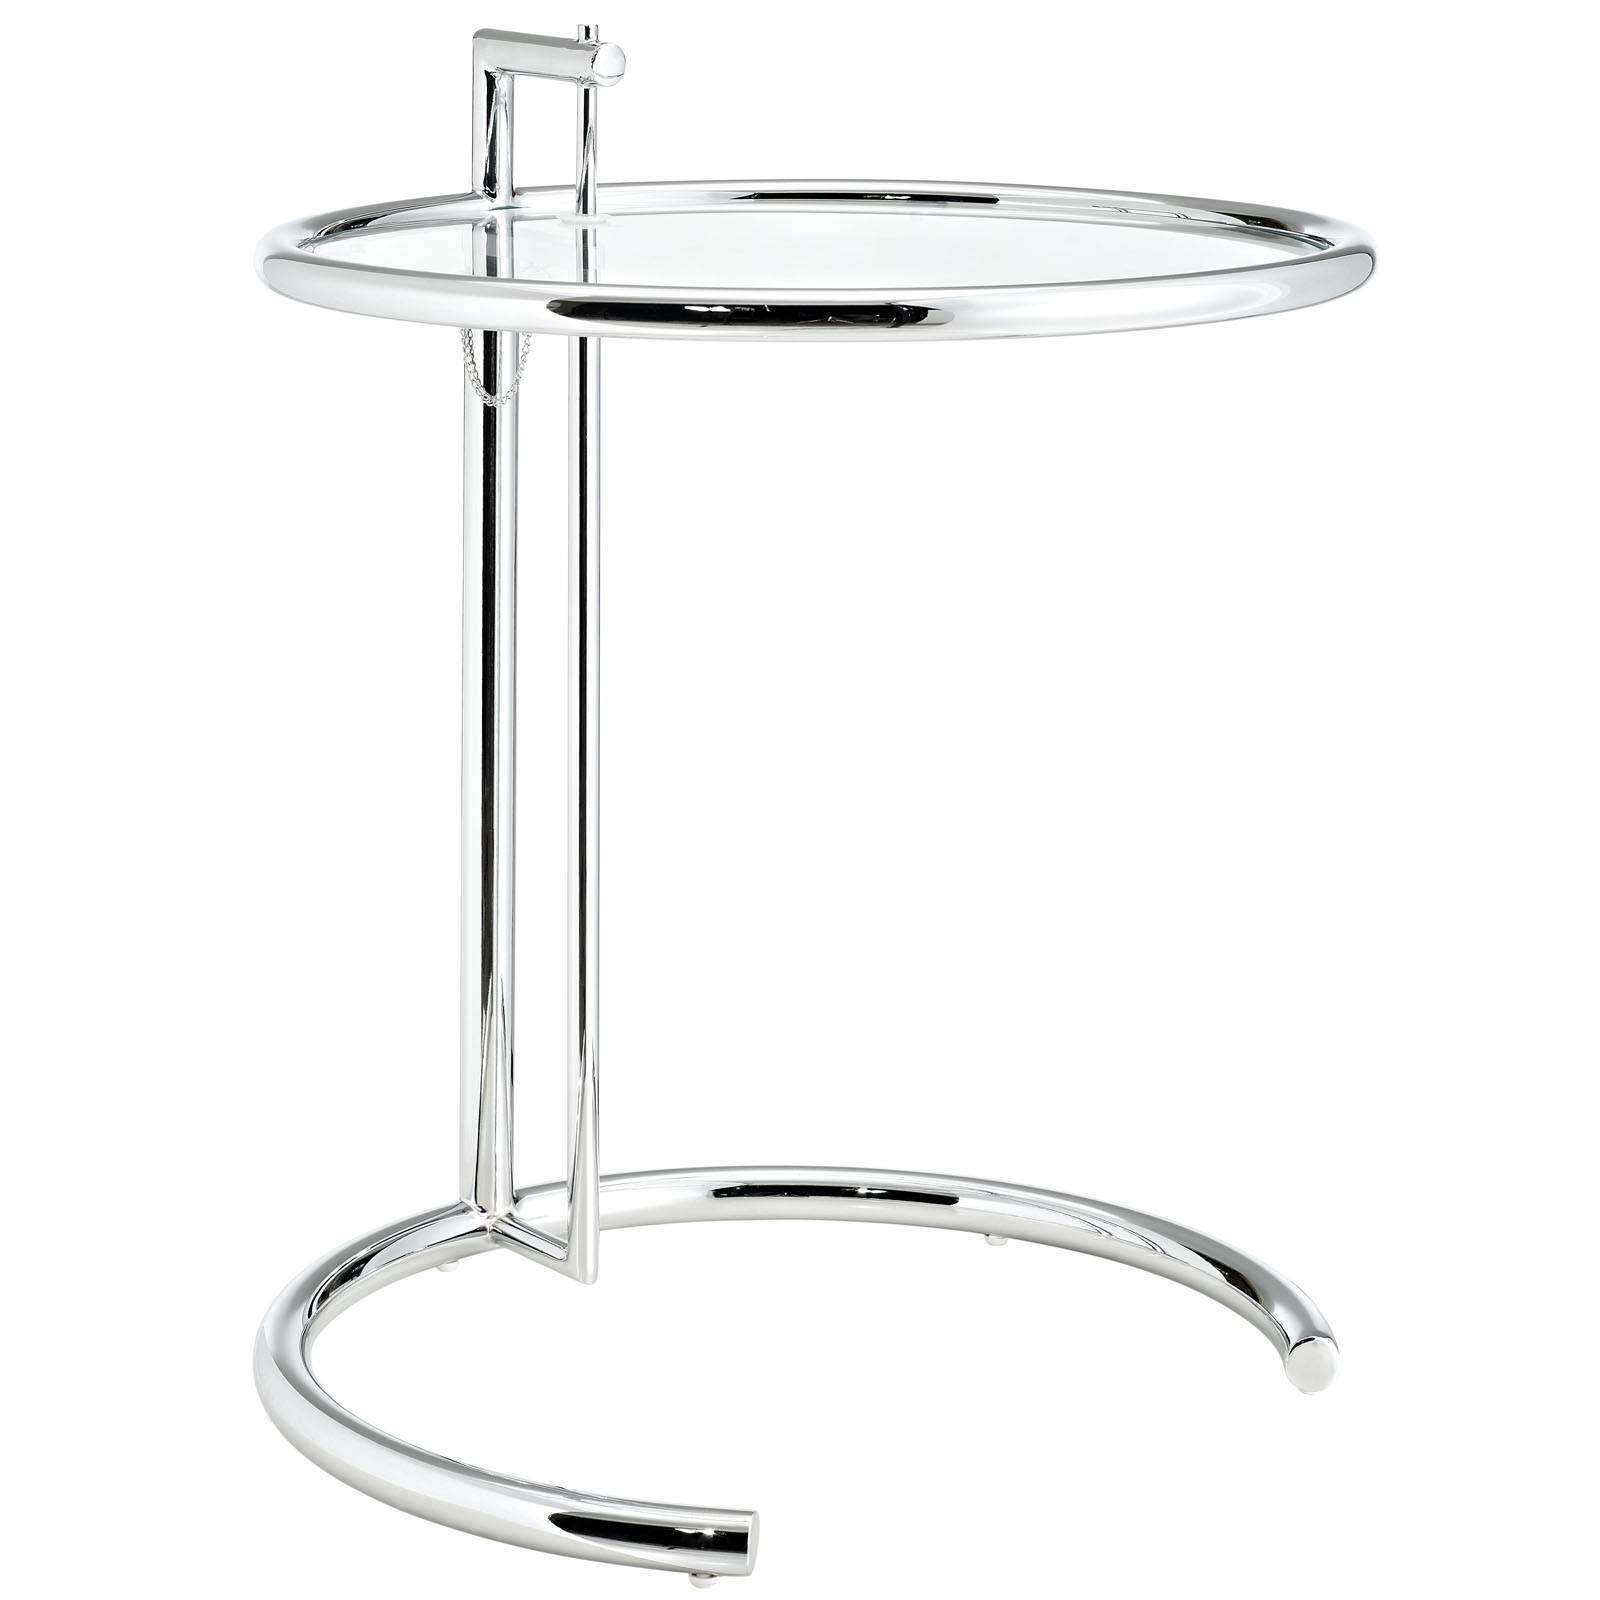 Eileen Gray Style Side Table : EEI 125 SLV1 from www.modterior.com size 1600 x 1600 jpeg 148kB